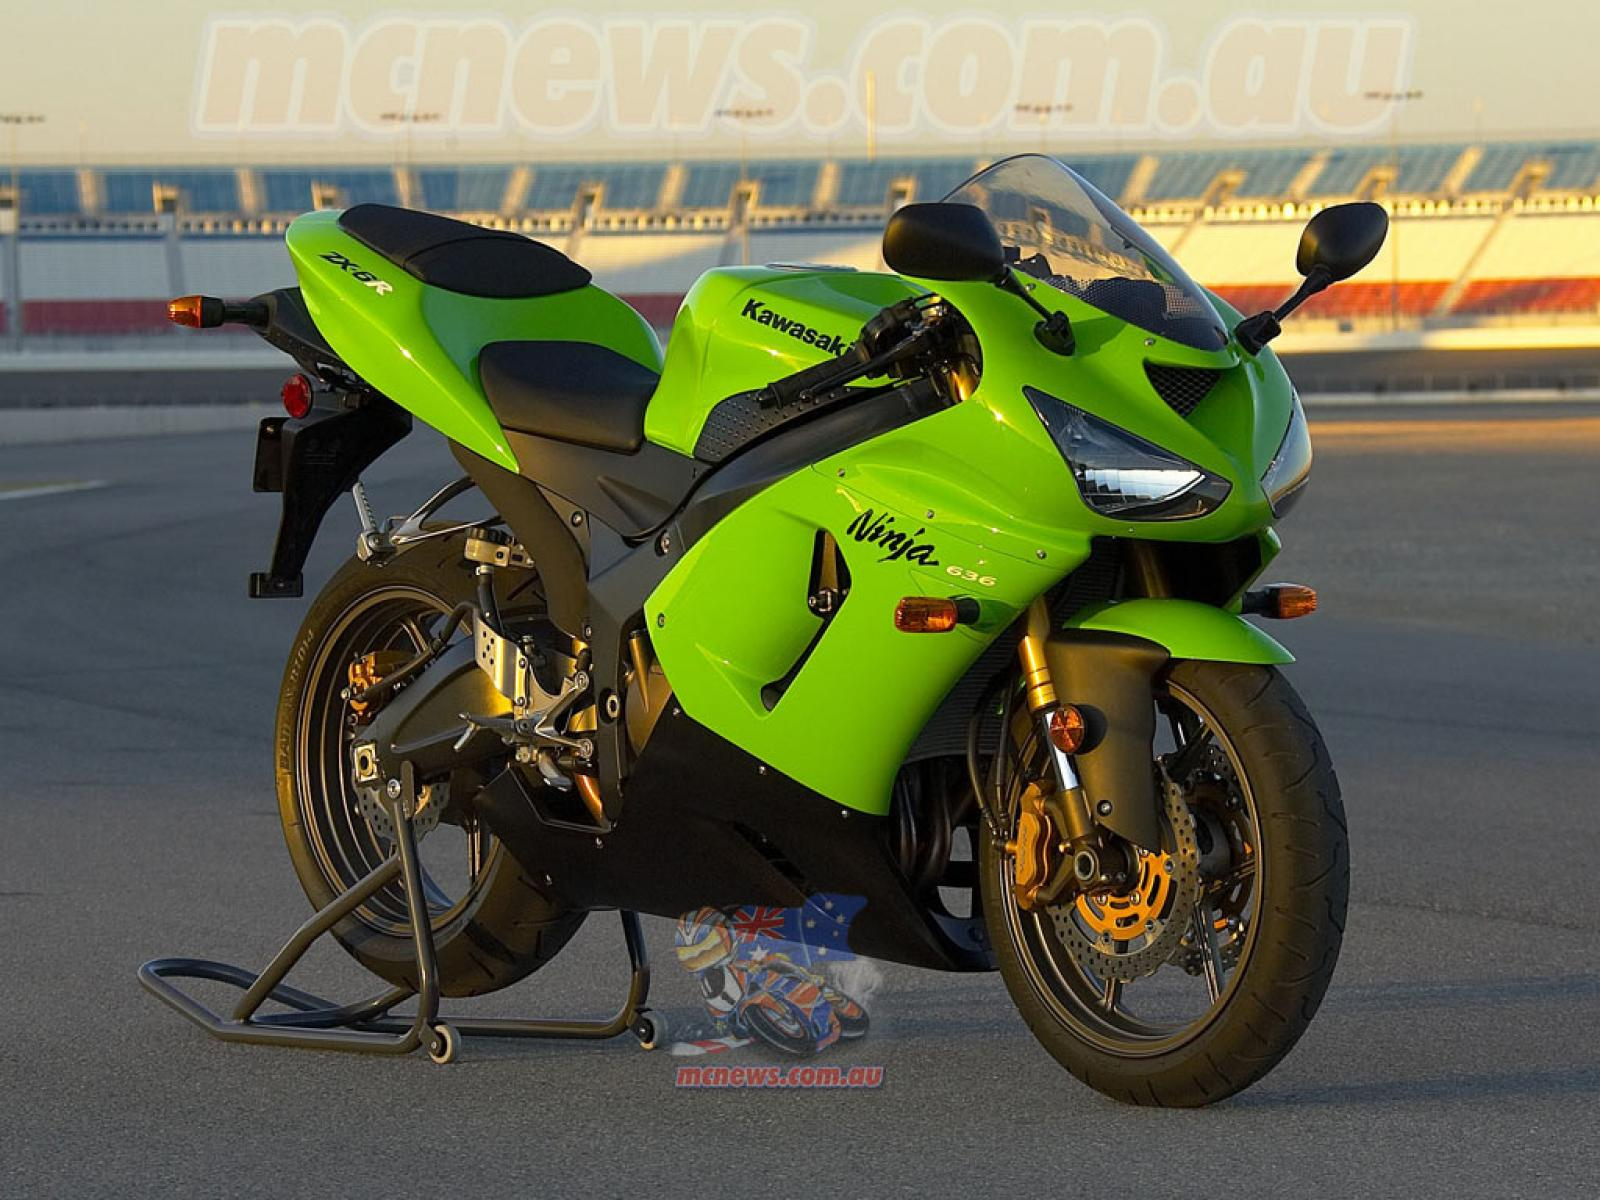 hight resolution of kawasaki ninja zx 6rr 2005 1 800 1024 1280 1600 origin